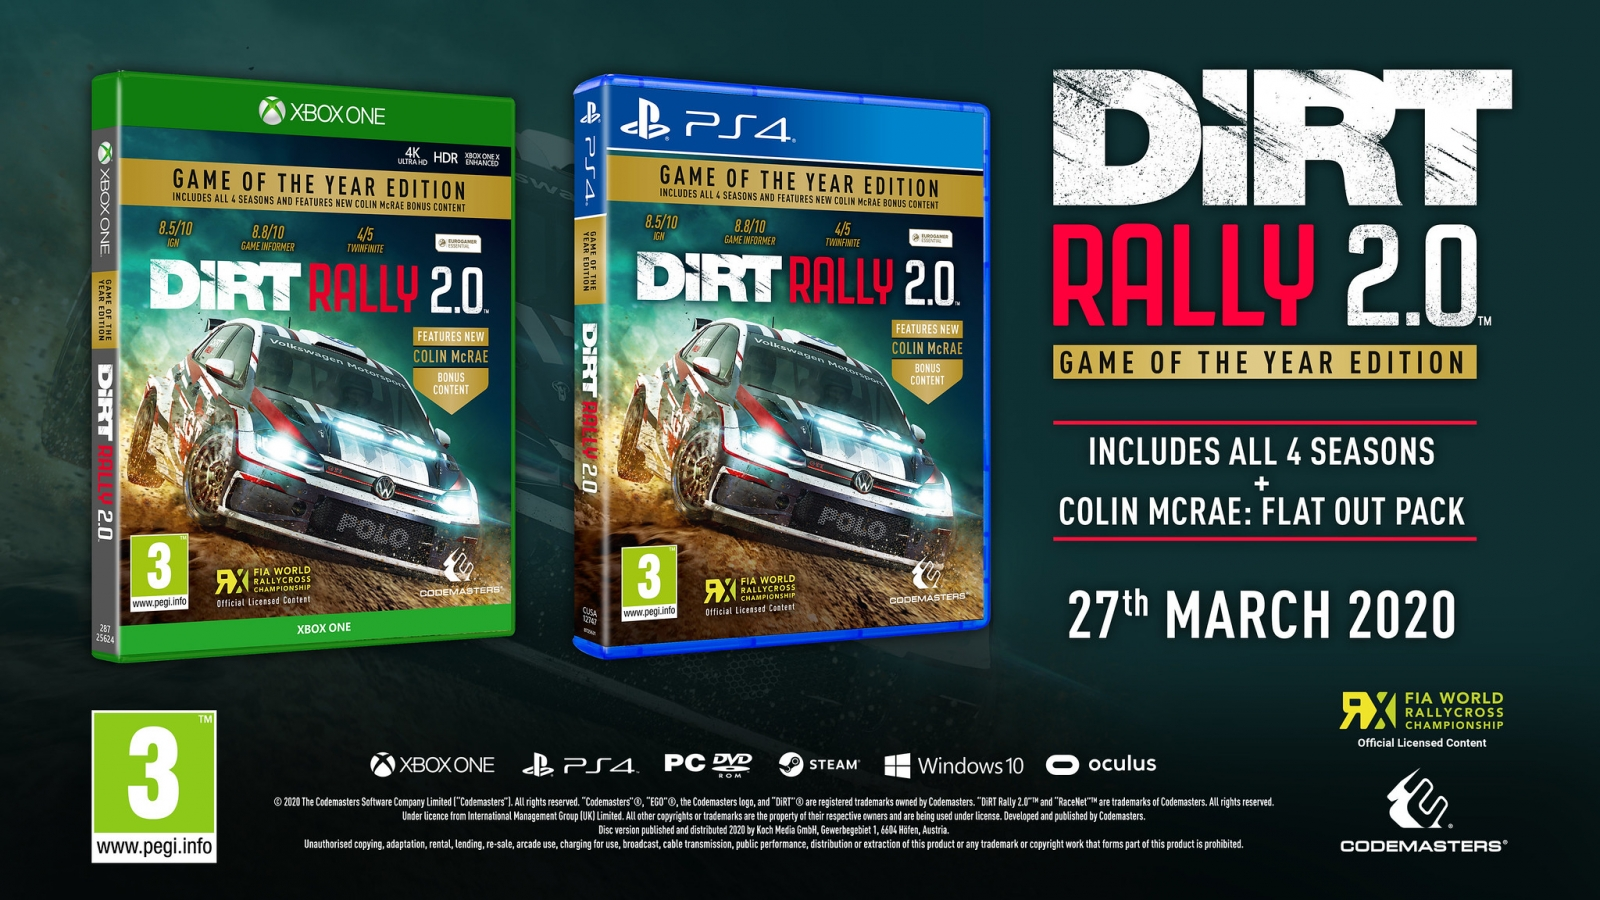 PS4 Dirt Rally 2.0 Game Of The Year Edition